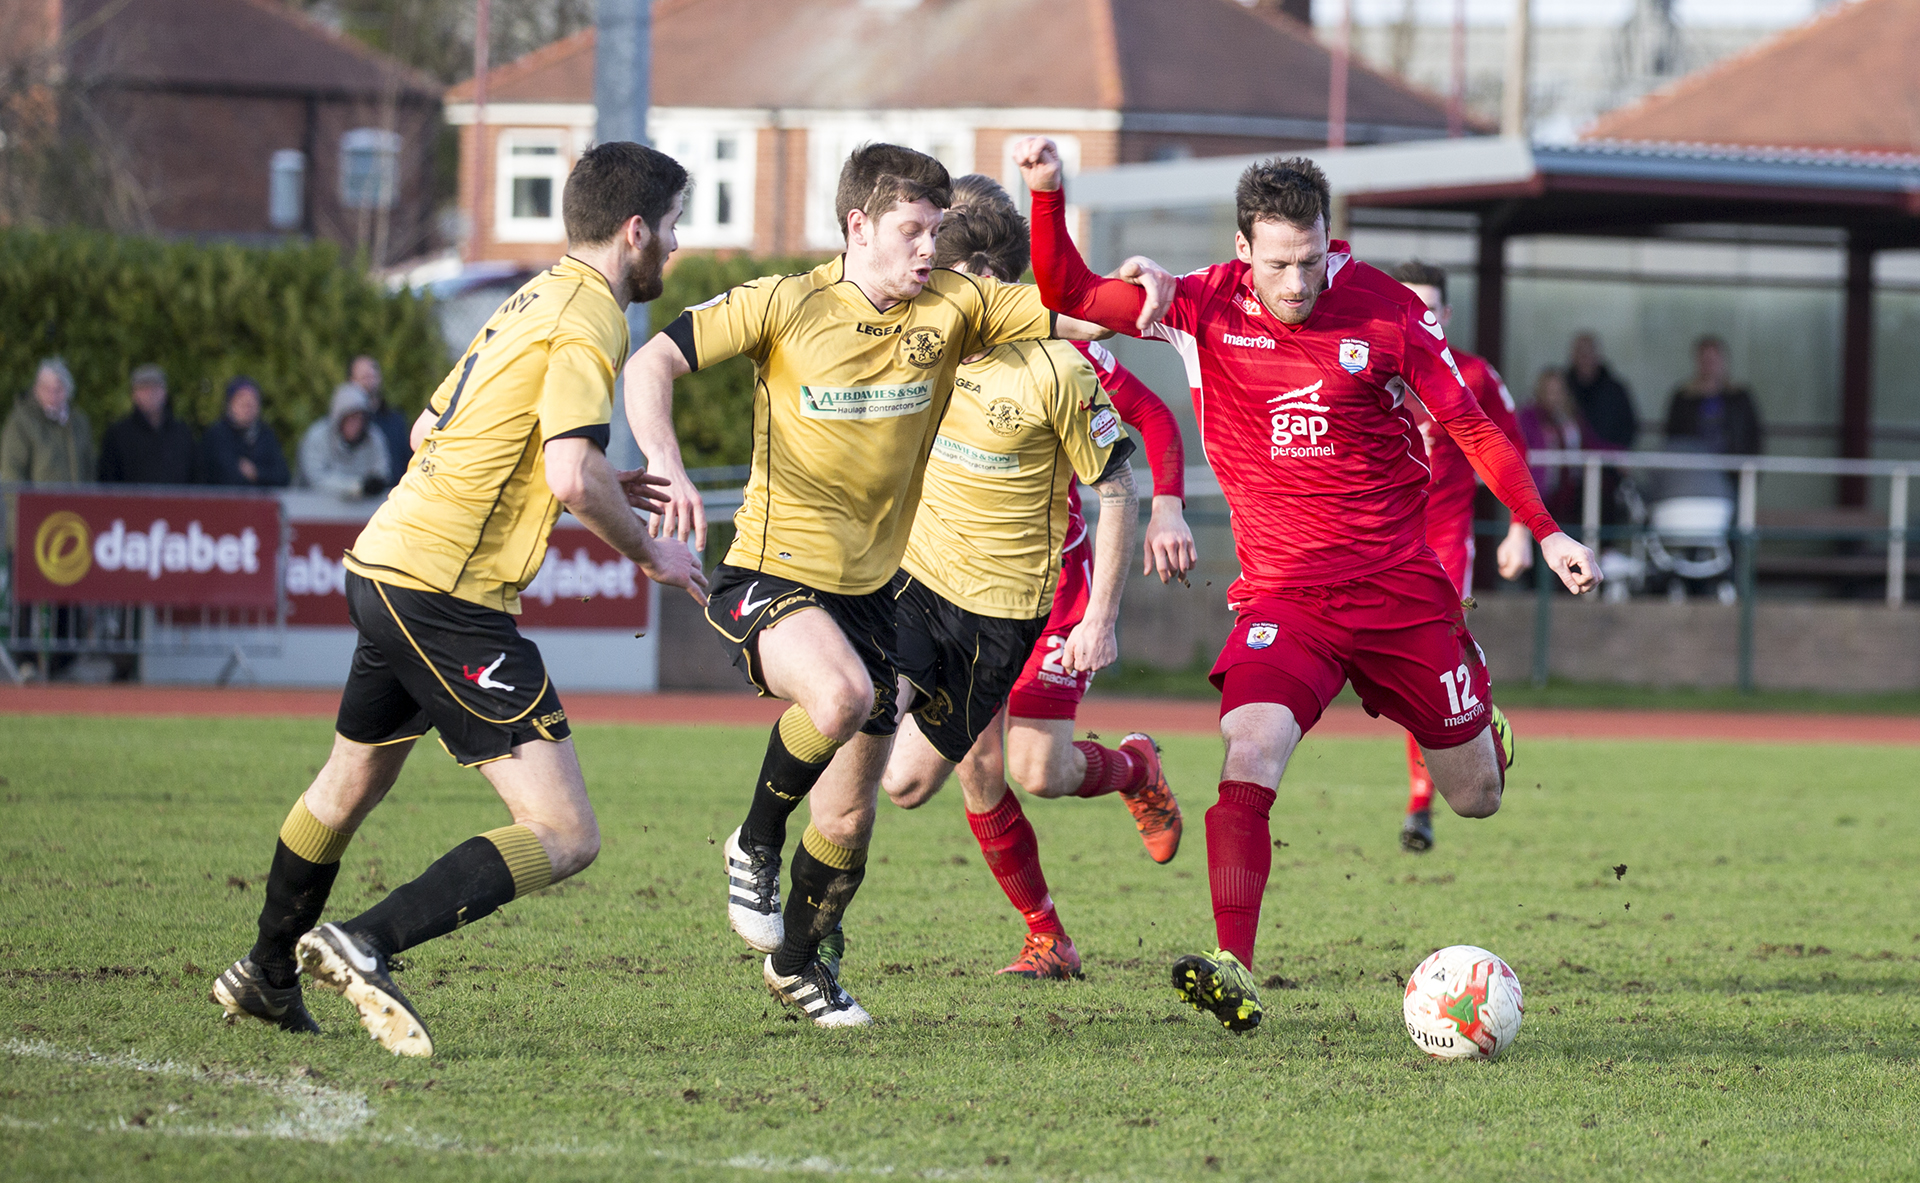 Matty Williams goes on the attack for The Nomads - © NCM Media